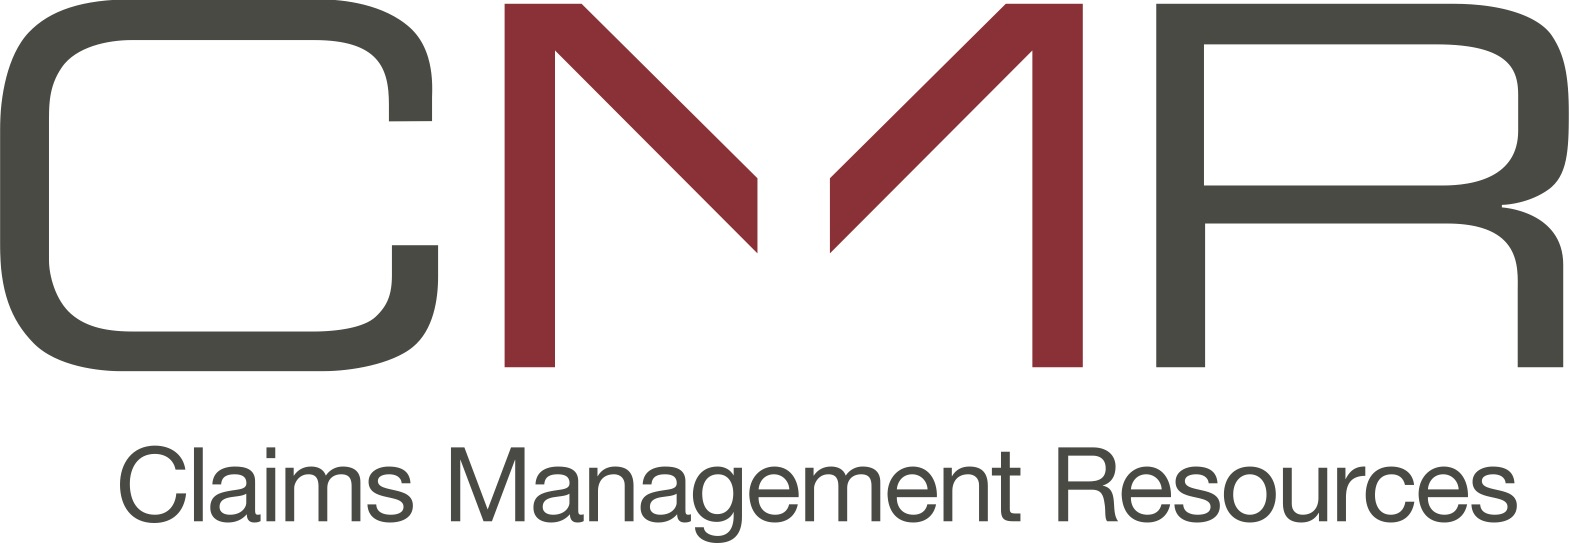 CMR-claims-management-resources.jpg